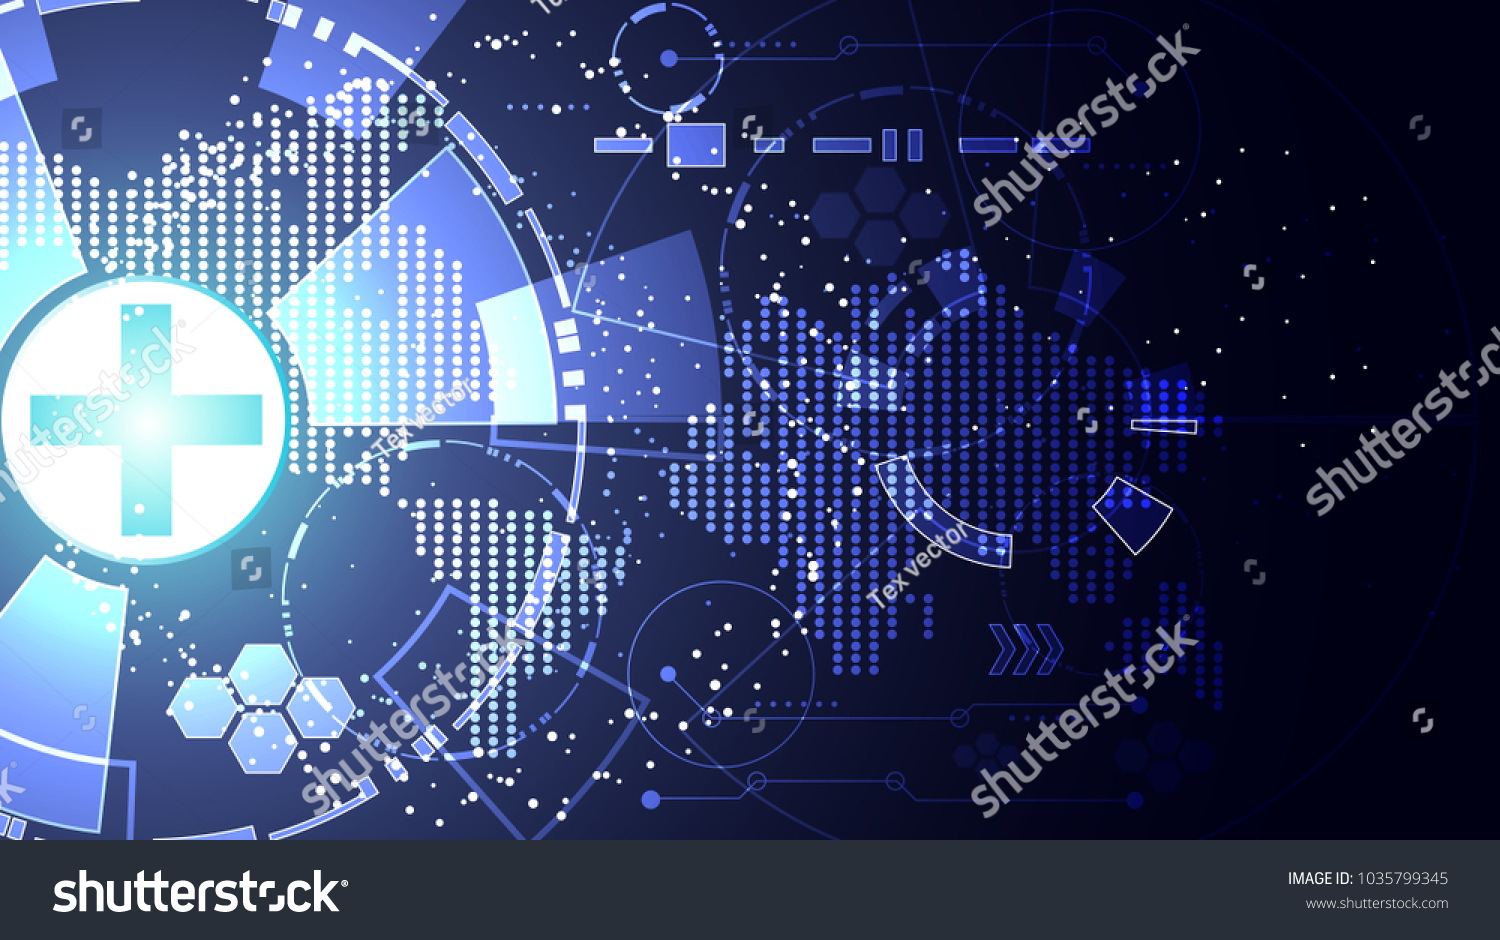 Abstract Technology Background Concept Health Plus Blue Light And Map Dot Circle Graphic System Wallpaper